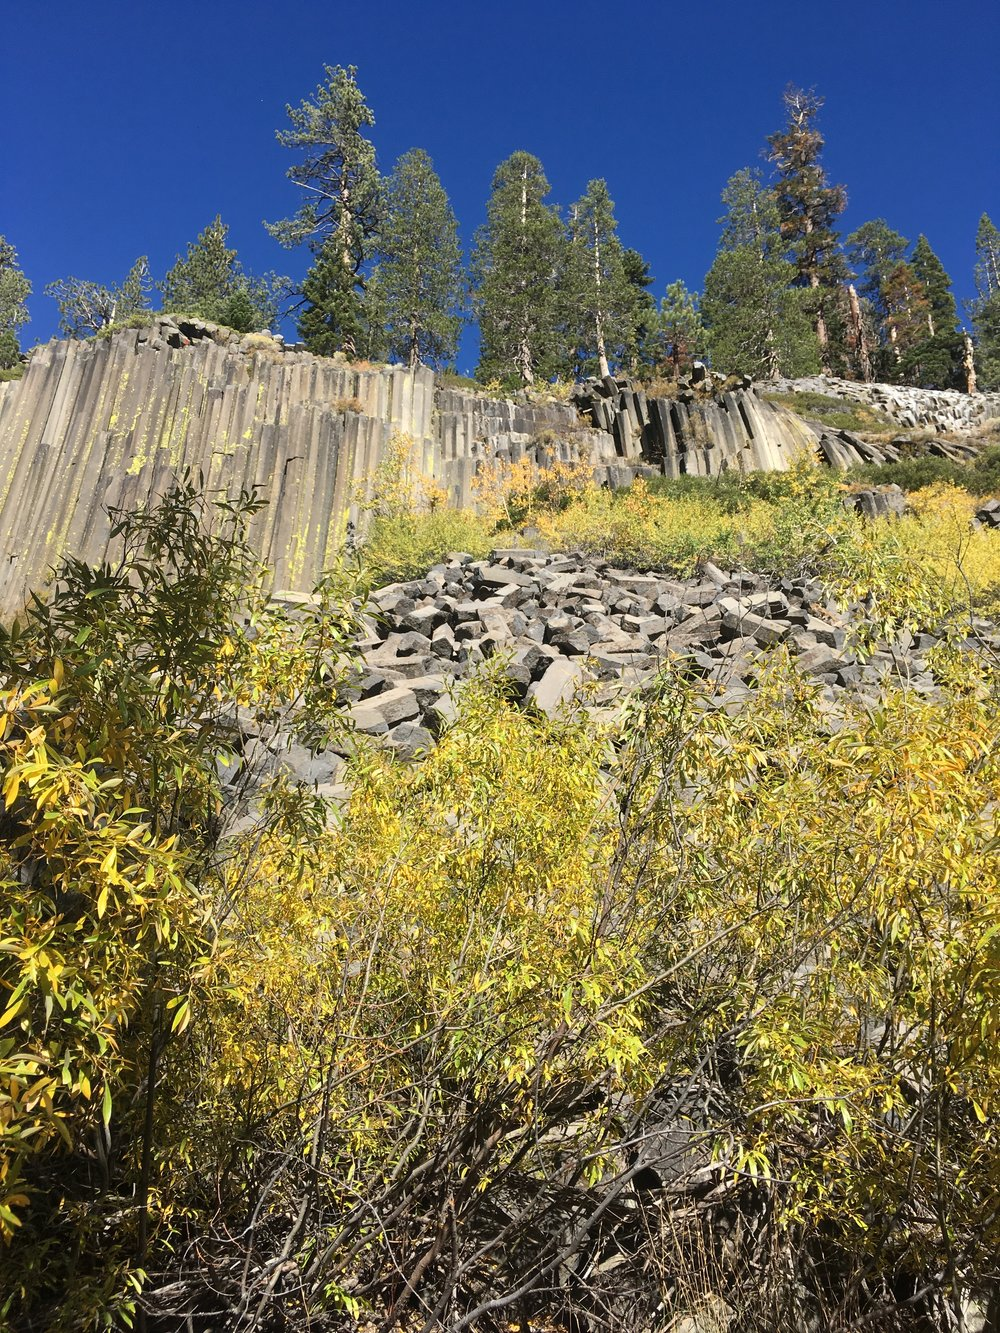 Devil's Postpile. So glad this wasn't blasted to make a dam 100 years ago as was once planned.